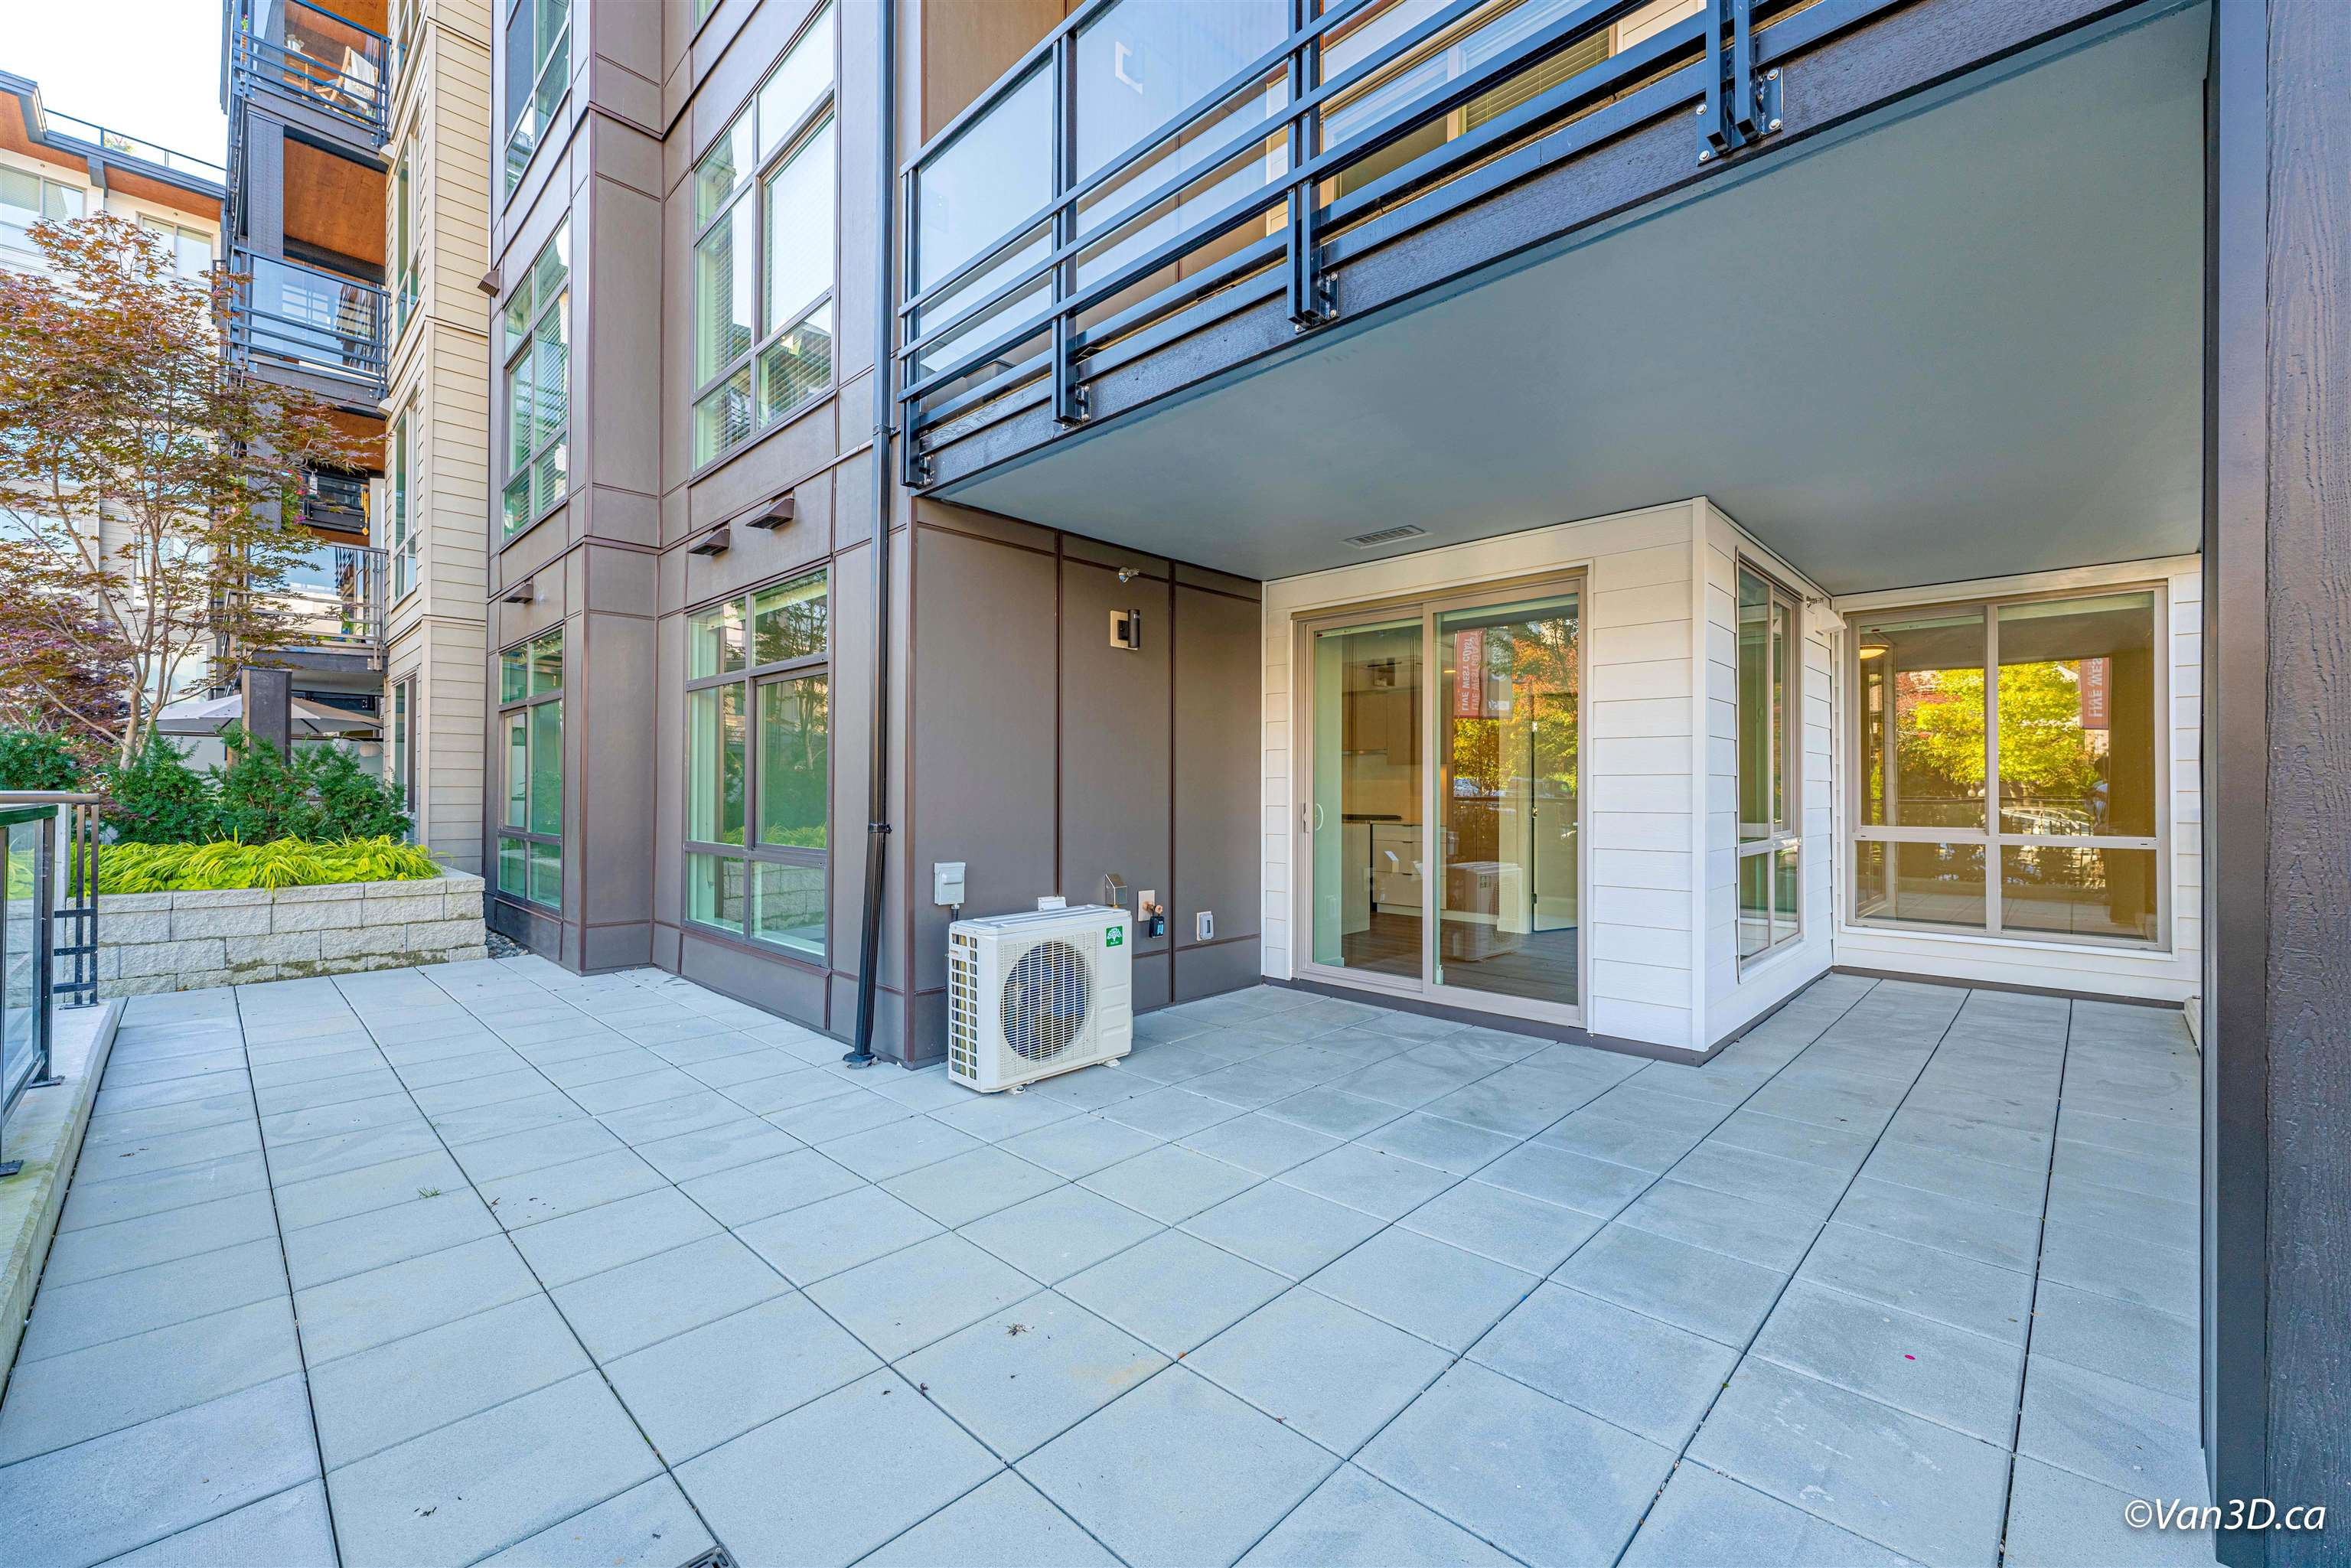 114 108 E 8TH STREET - Central Lonsdale Apartment/Condo for sale, 2 Bedrooms (R2624922) - #19